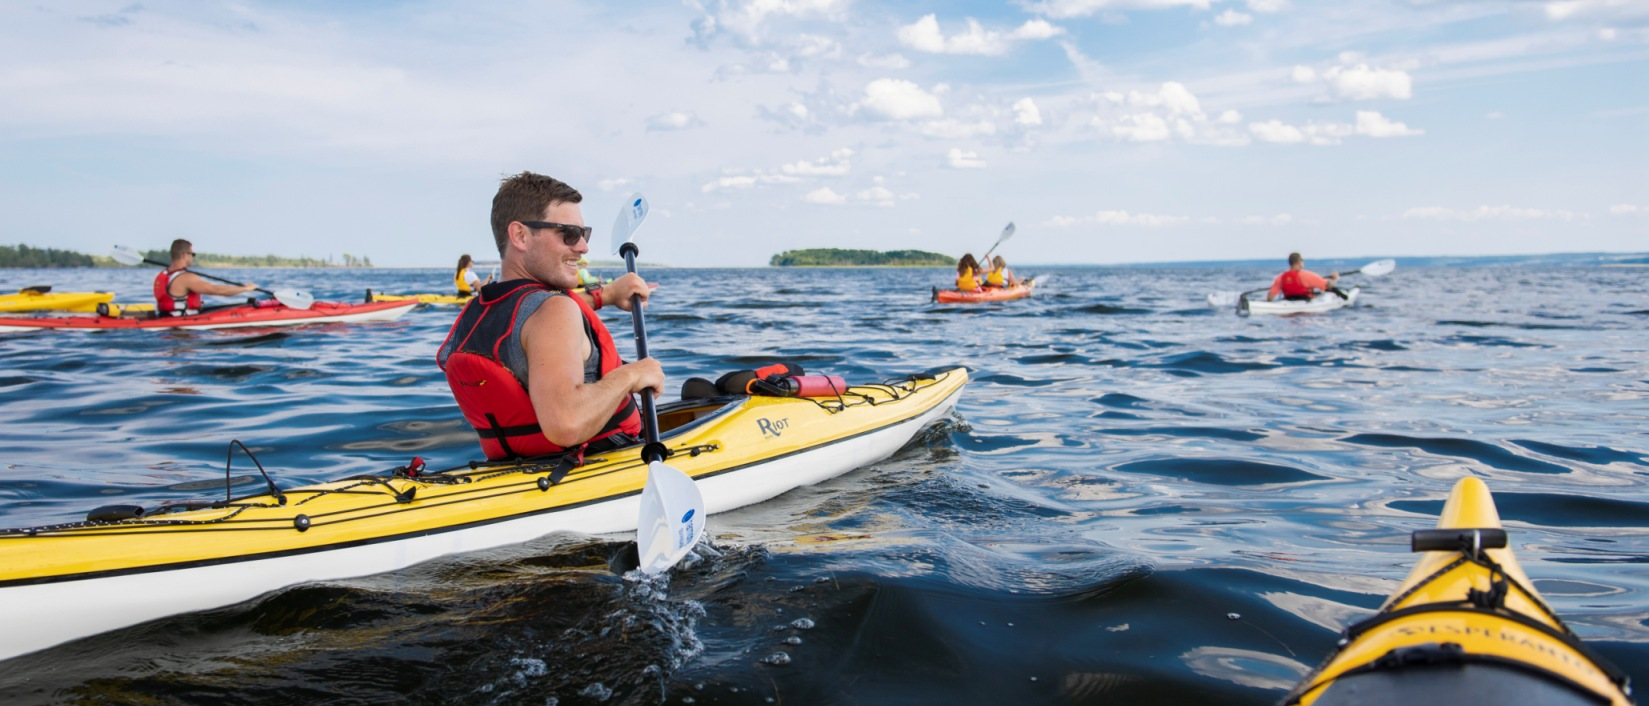 Guided kayaking tour at Fox Harb'r Resort